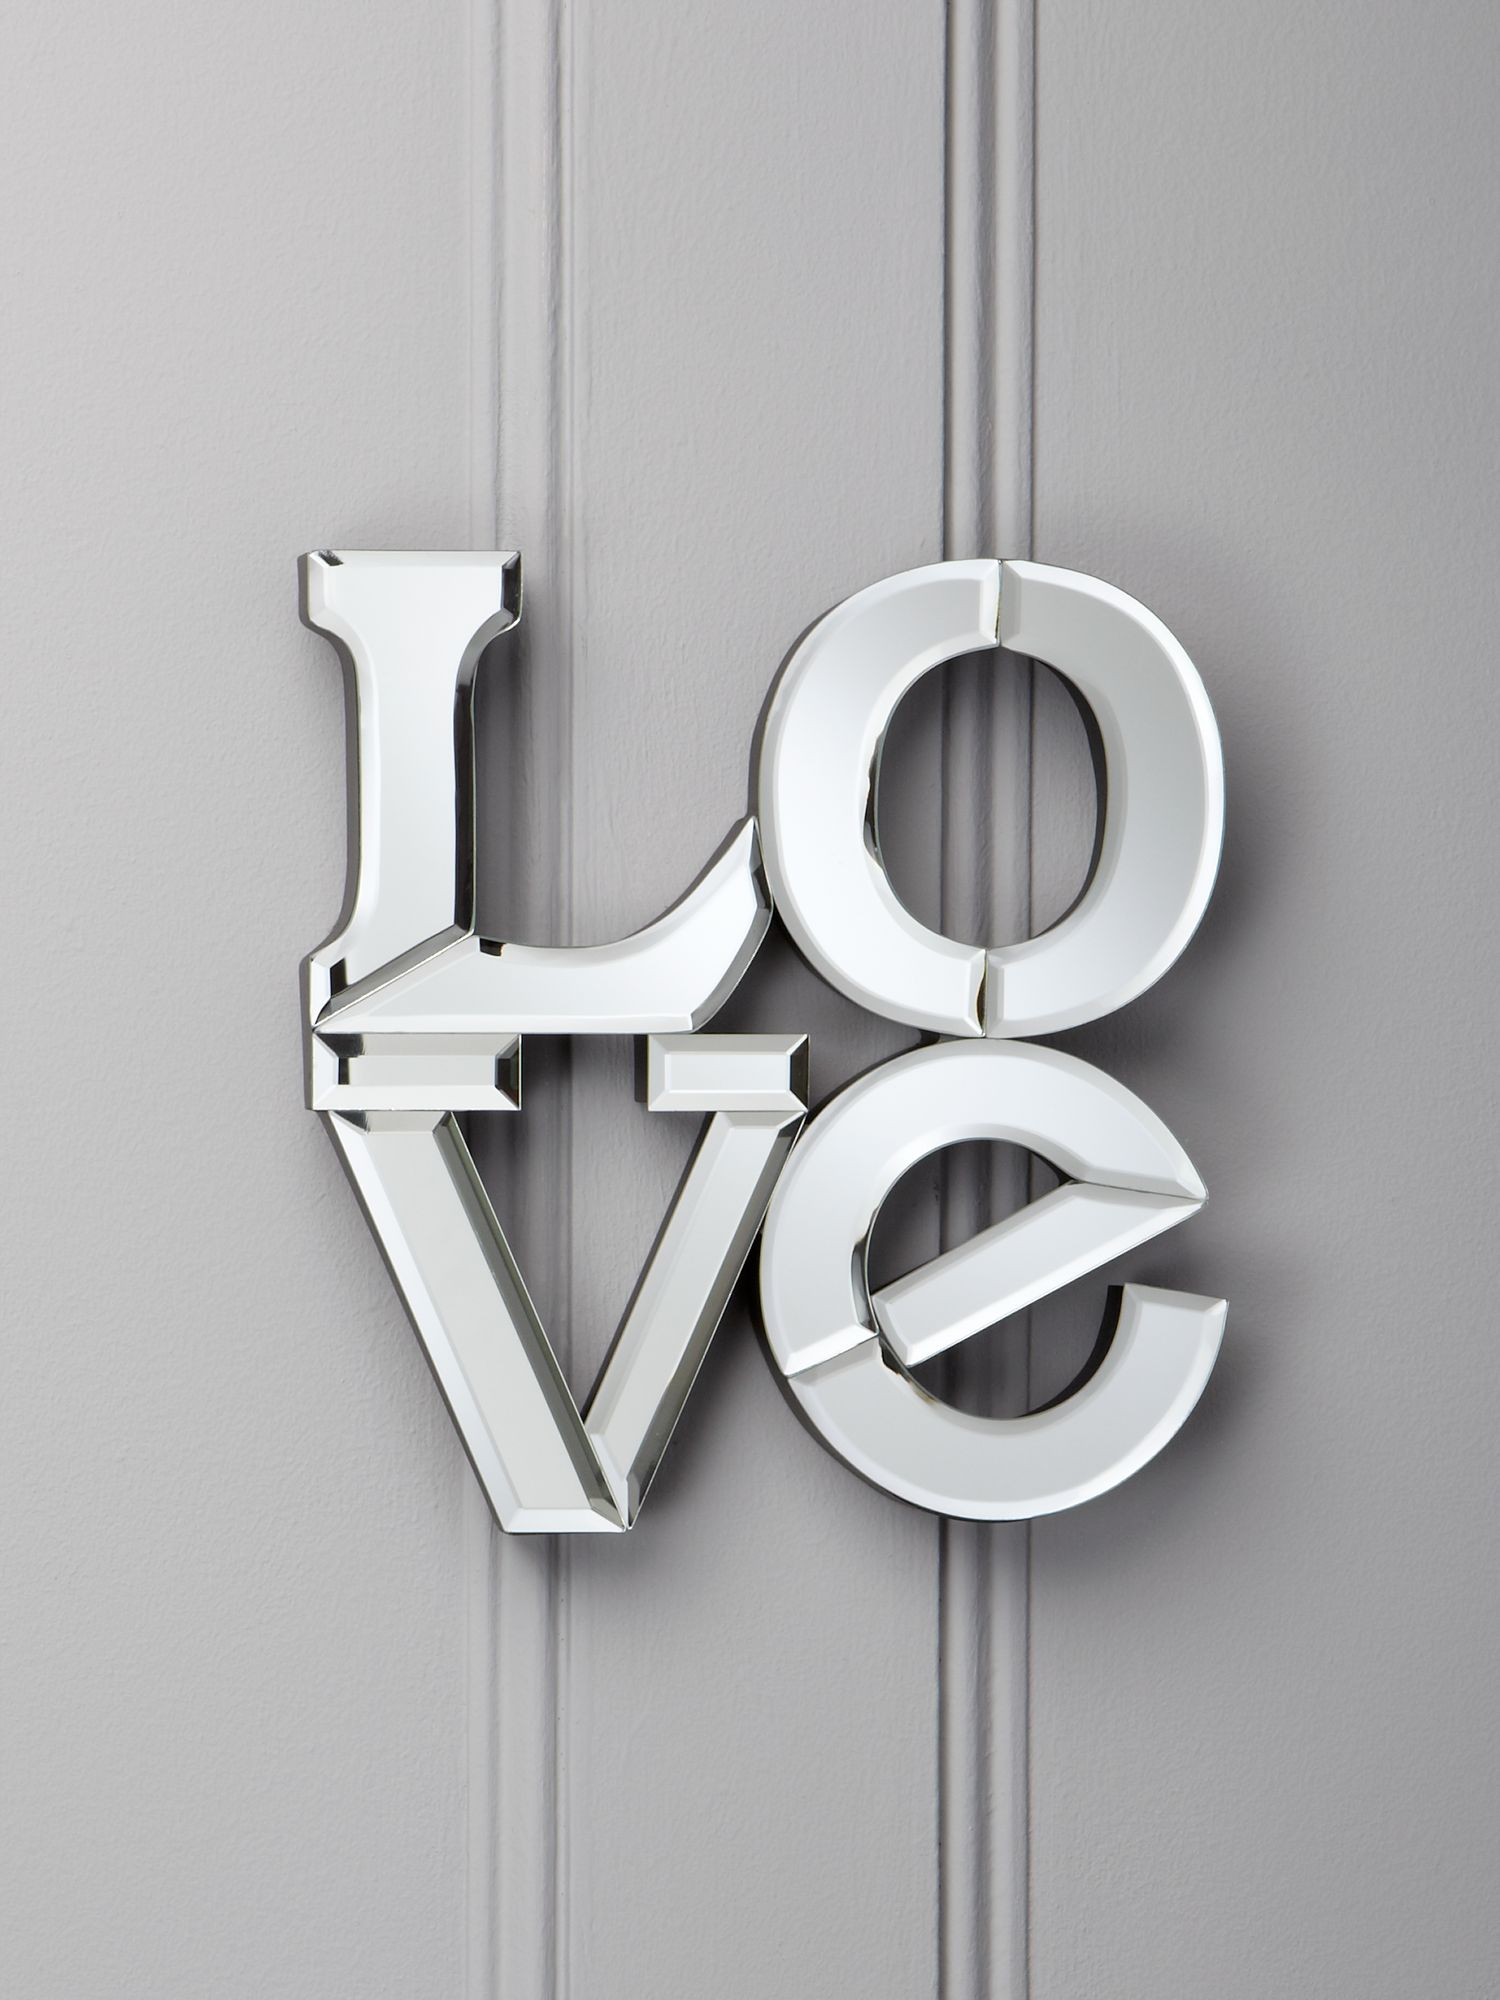 Mirrored `Love` letters